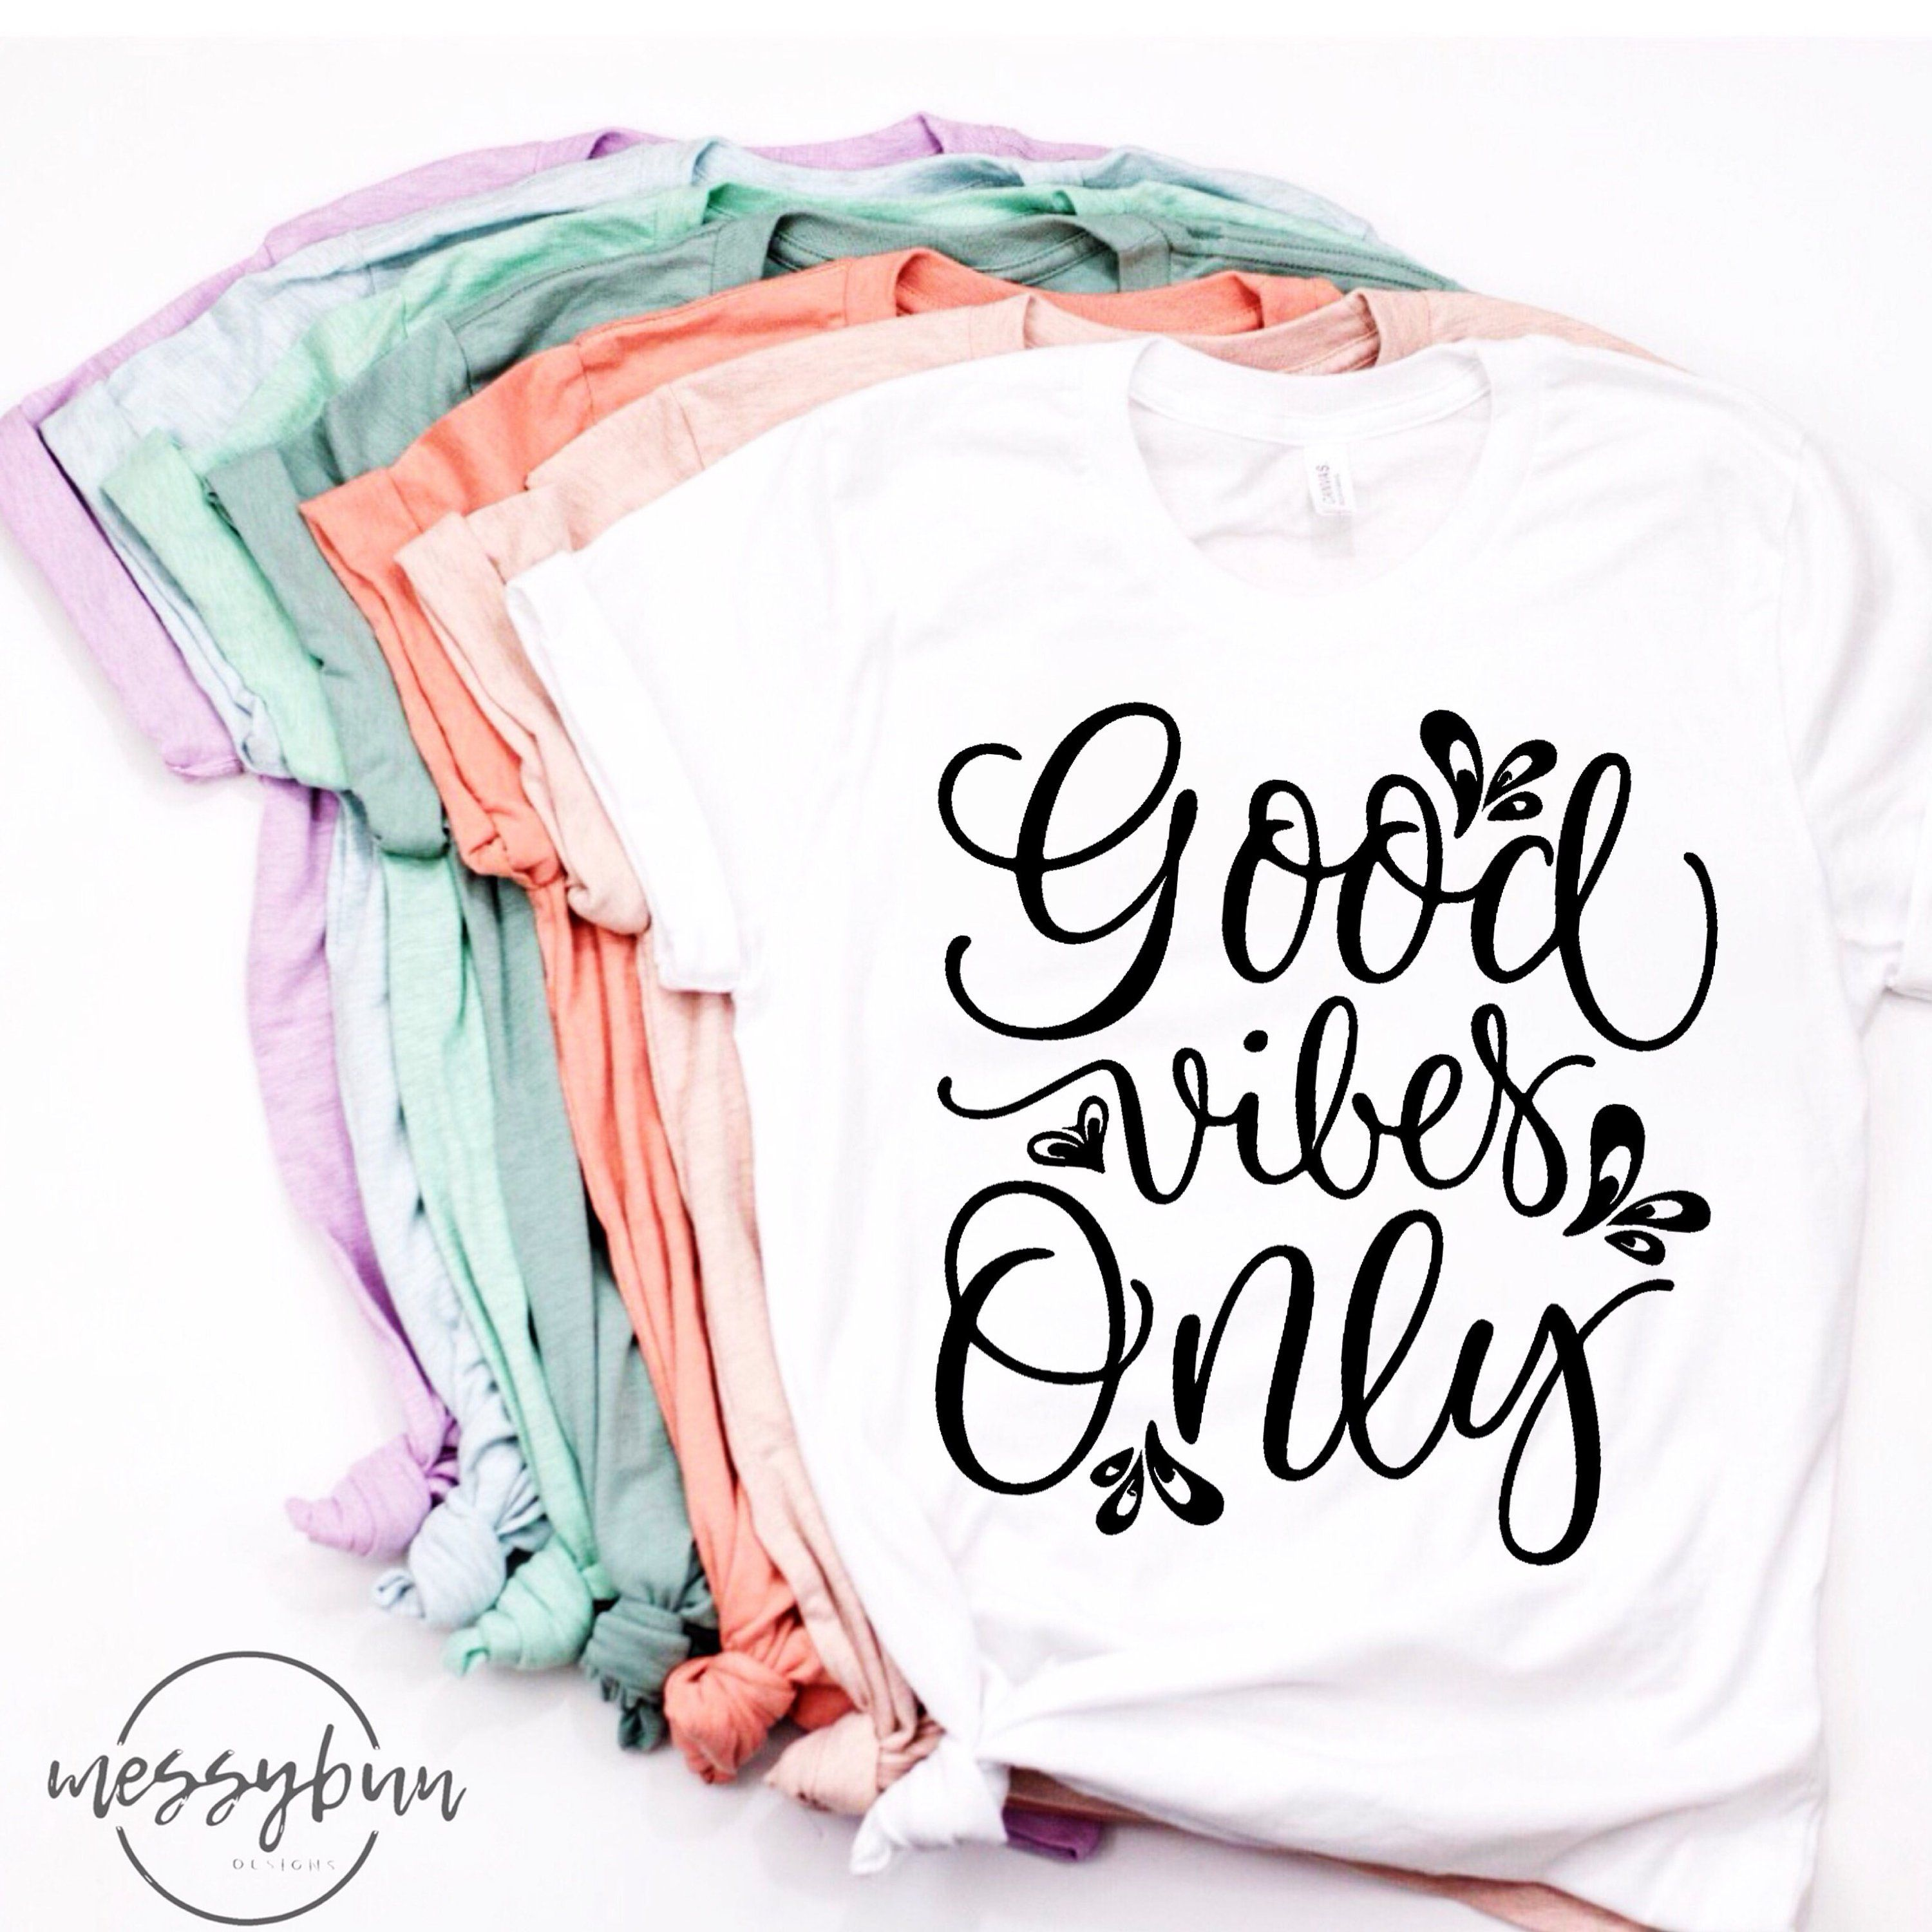 3d106378b Good Vibes - Graphic Tee - Women's Shirt - Good Vibes Only Tshirt - Vibes - Positive  Vibes - Gift for Her - Cute Graphic Tee - Women's Tee